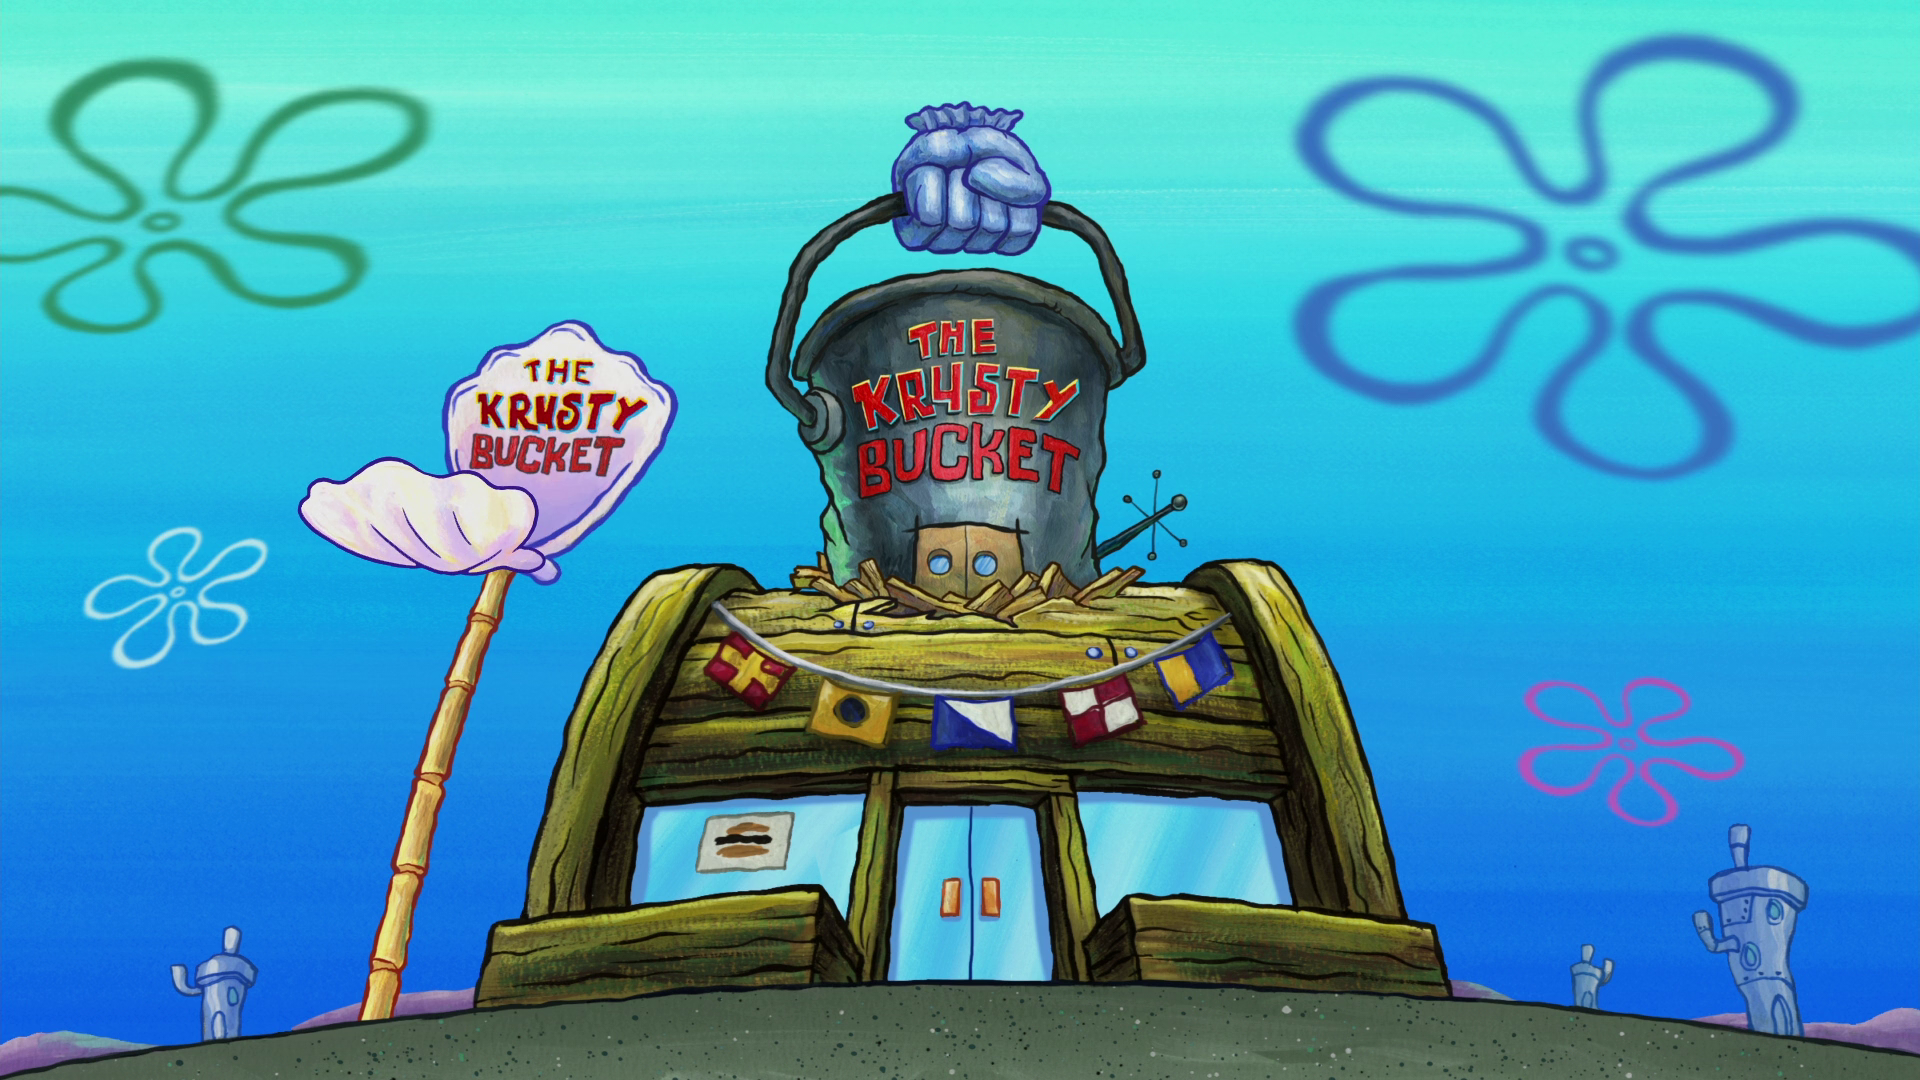 The Krusty Bucket (location)